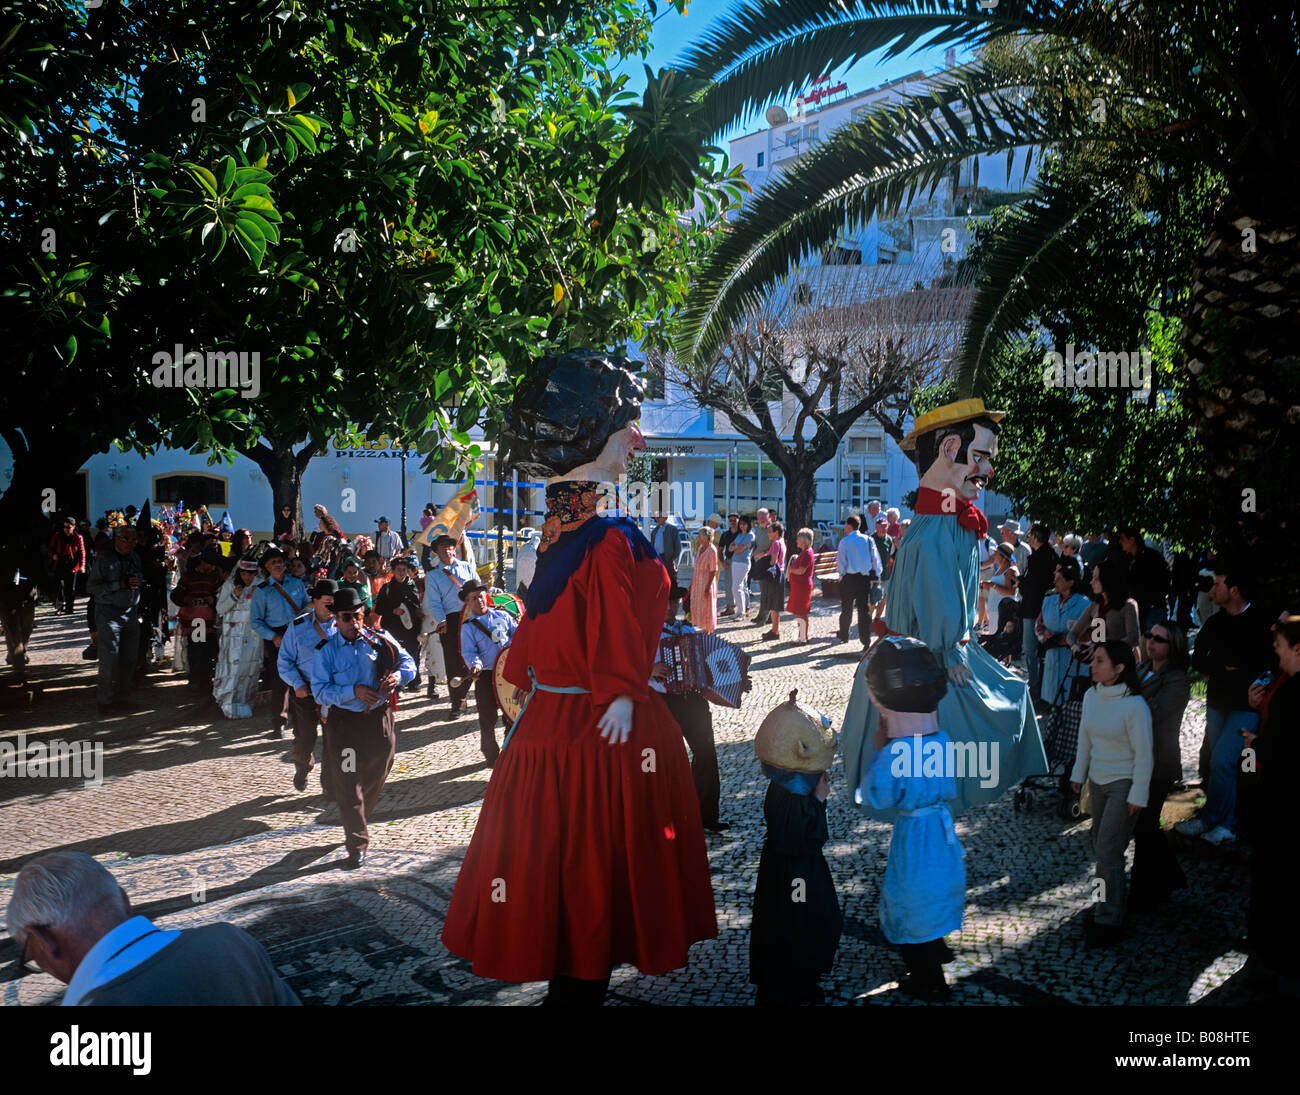 Costumed figures dancing in the central plaza of Albufeira early Febuary at the start of Lent season Algarve Purtugal - Stock Image